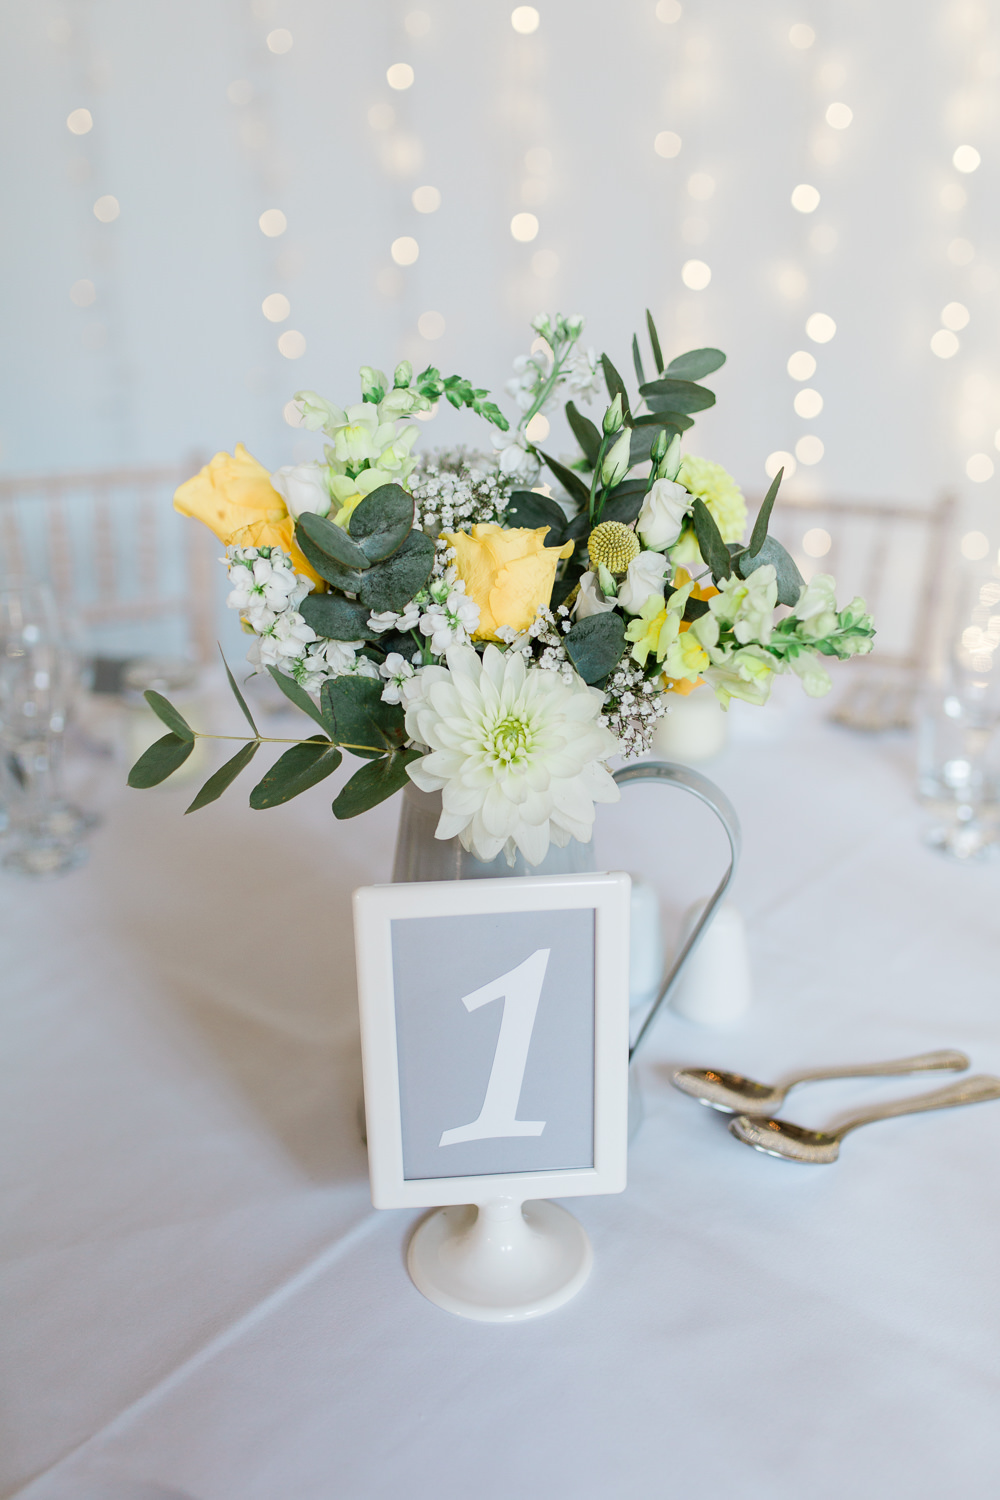 Table Number Ikea Yellow Flower Jug Table Centre Creative Summer Wedding Gemma Giorgio Photography